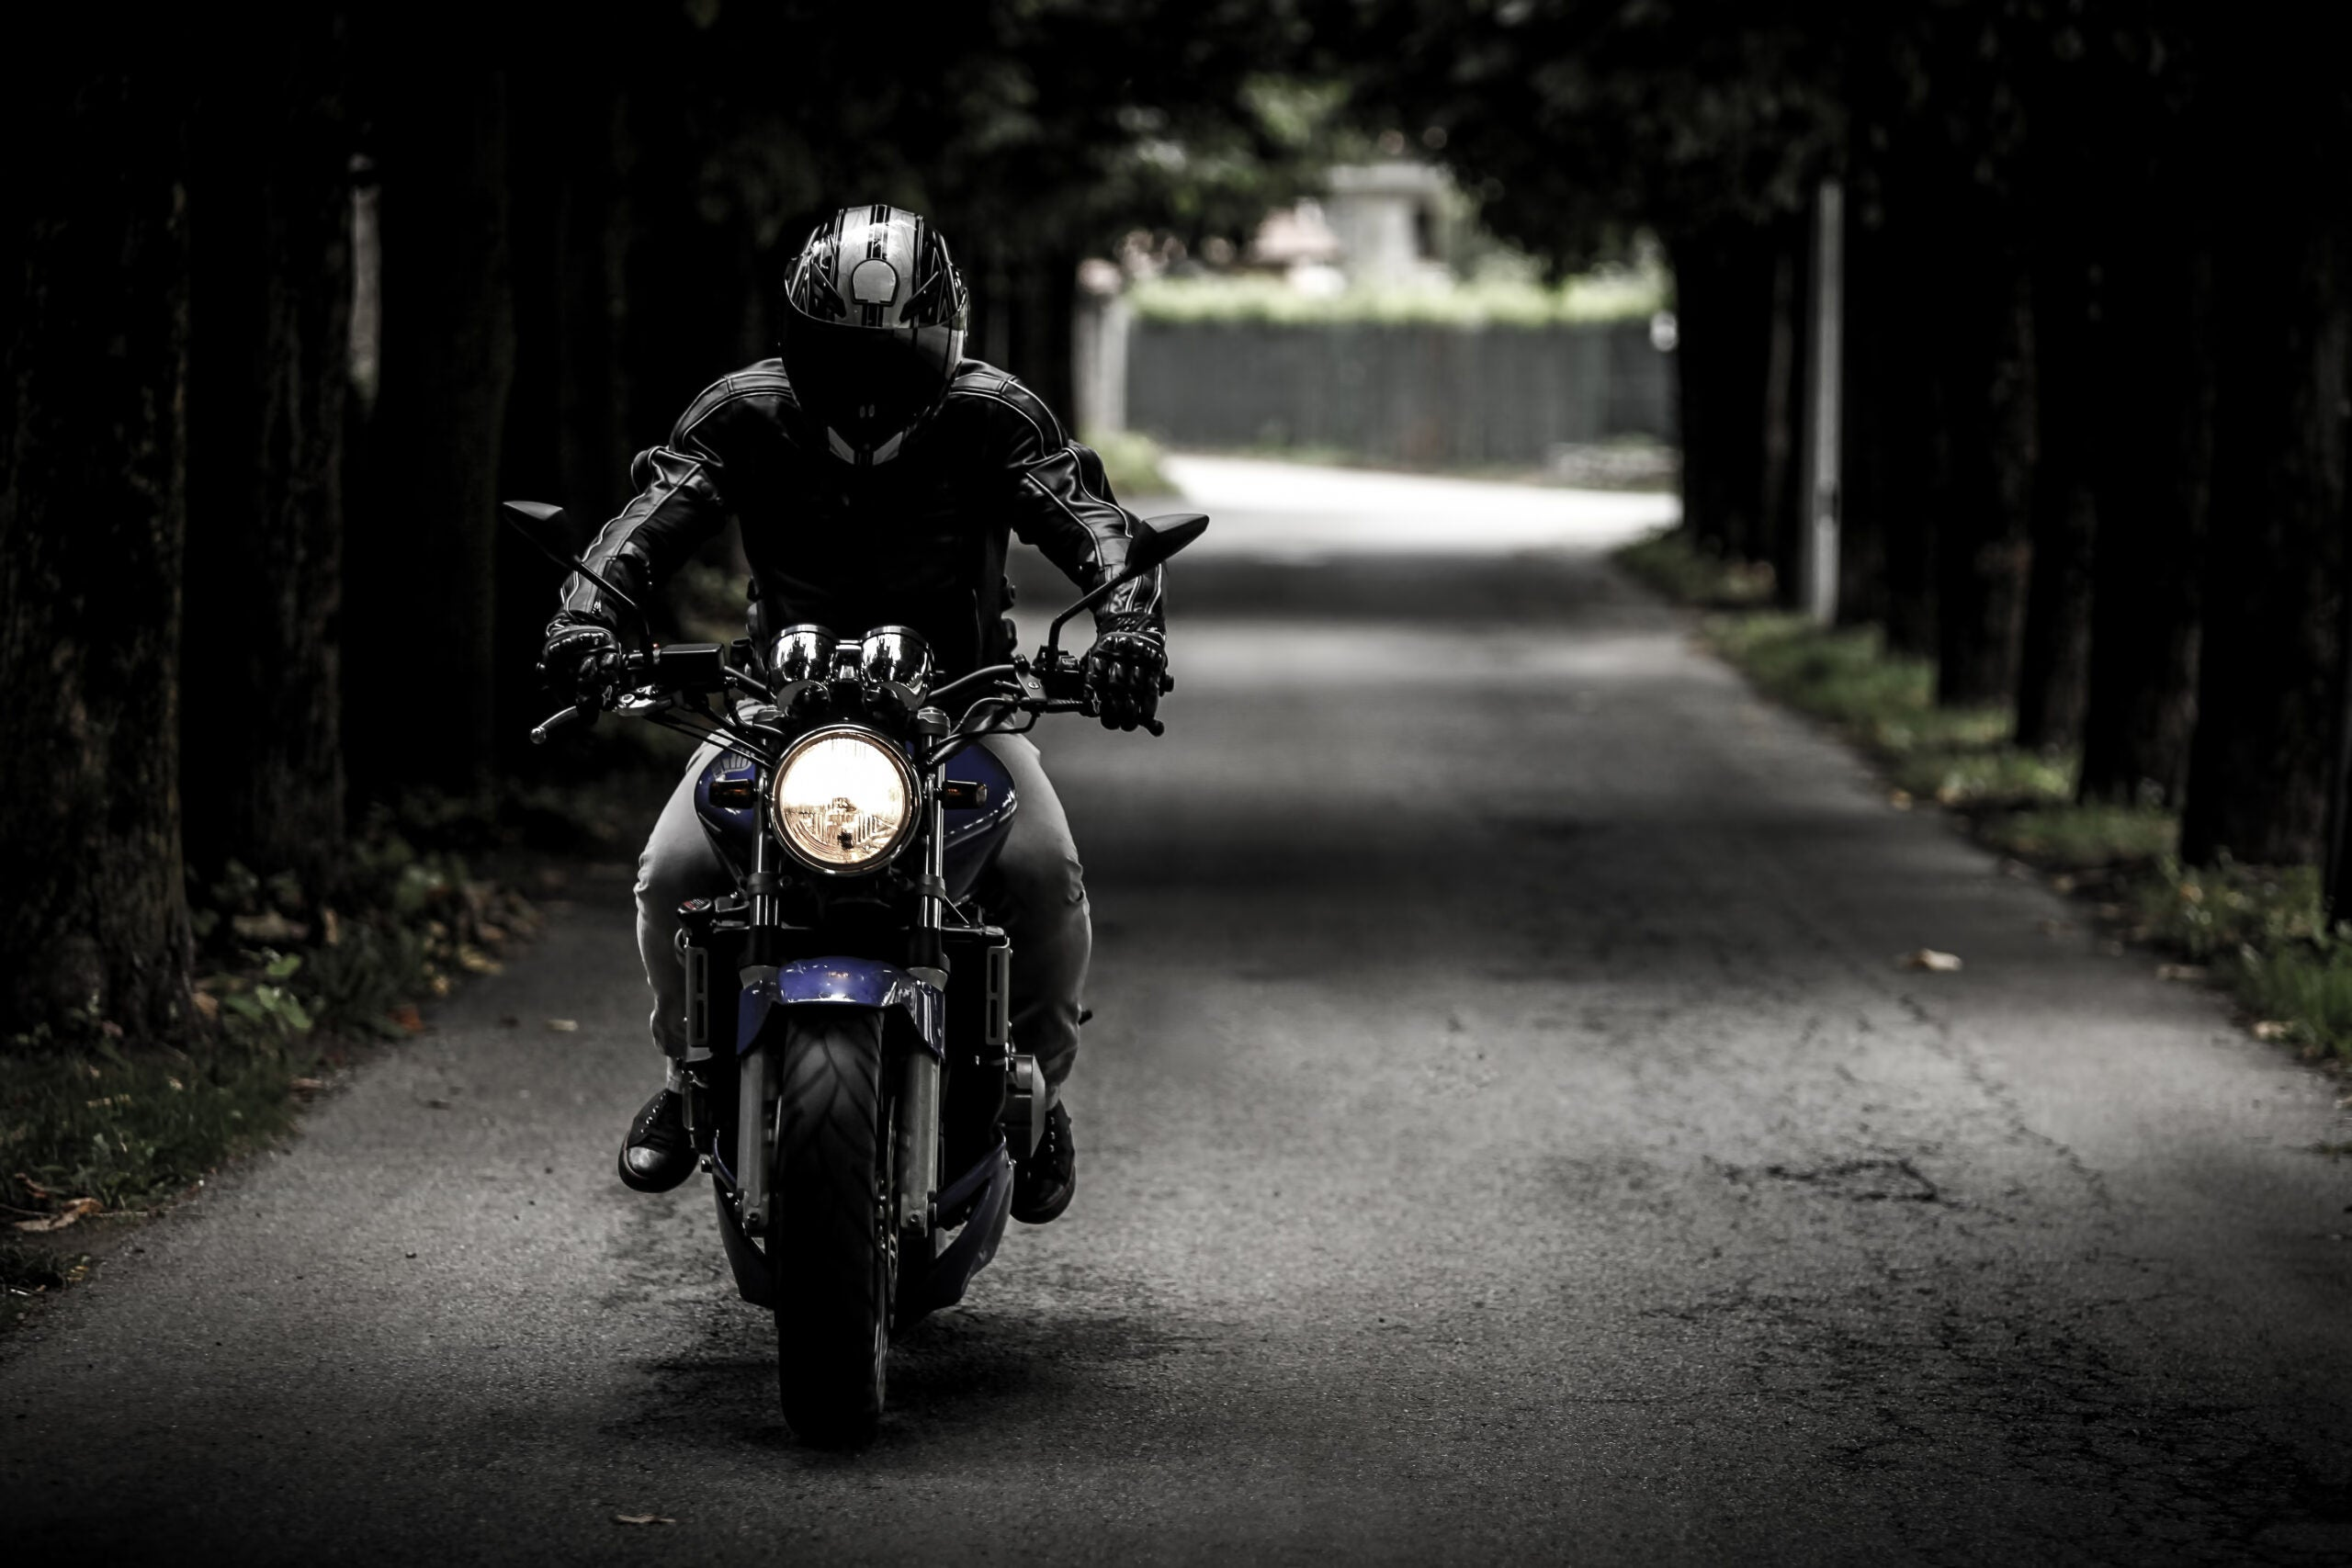 The biggest, baddest motorcycles money can buy